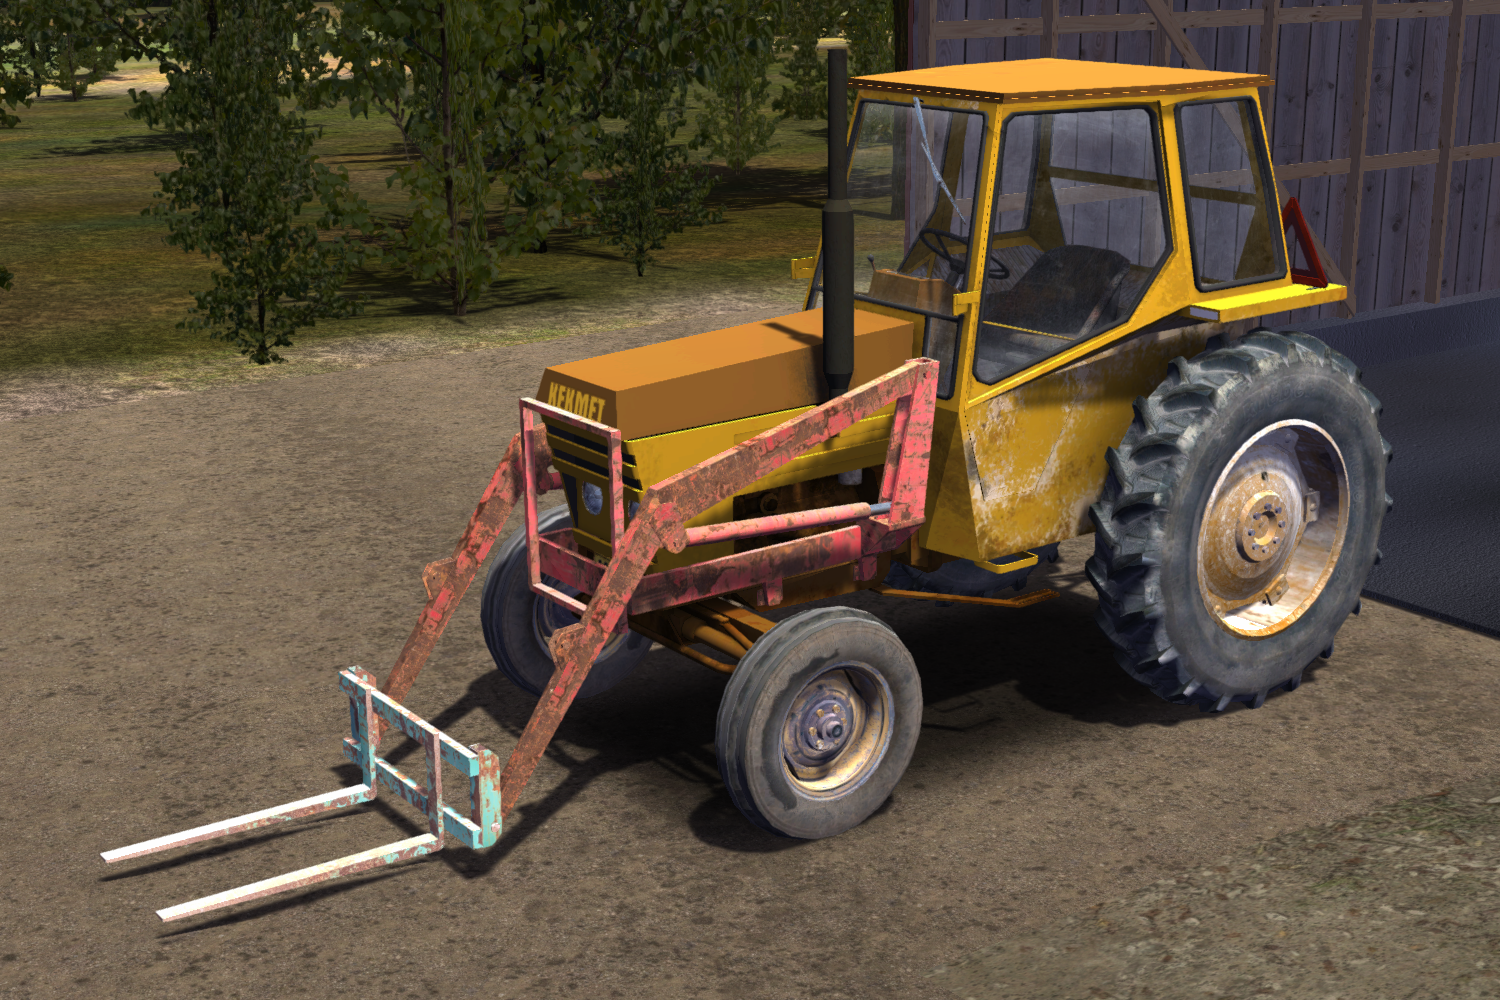 My summer car how to drive sewage truck